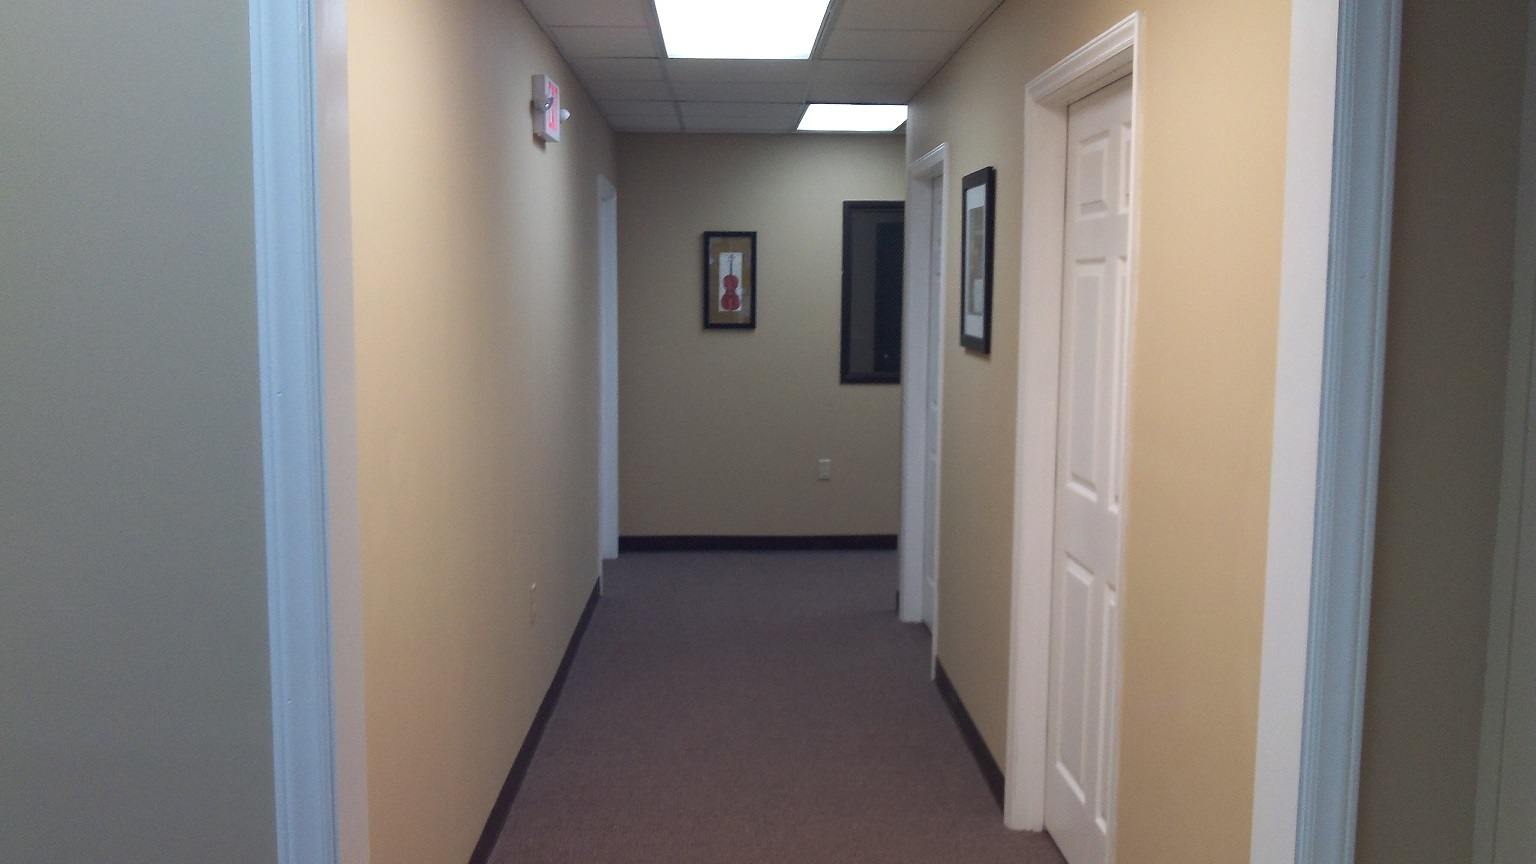 Studio Hallway to Four Additional Private Teaching Studios